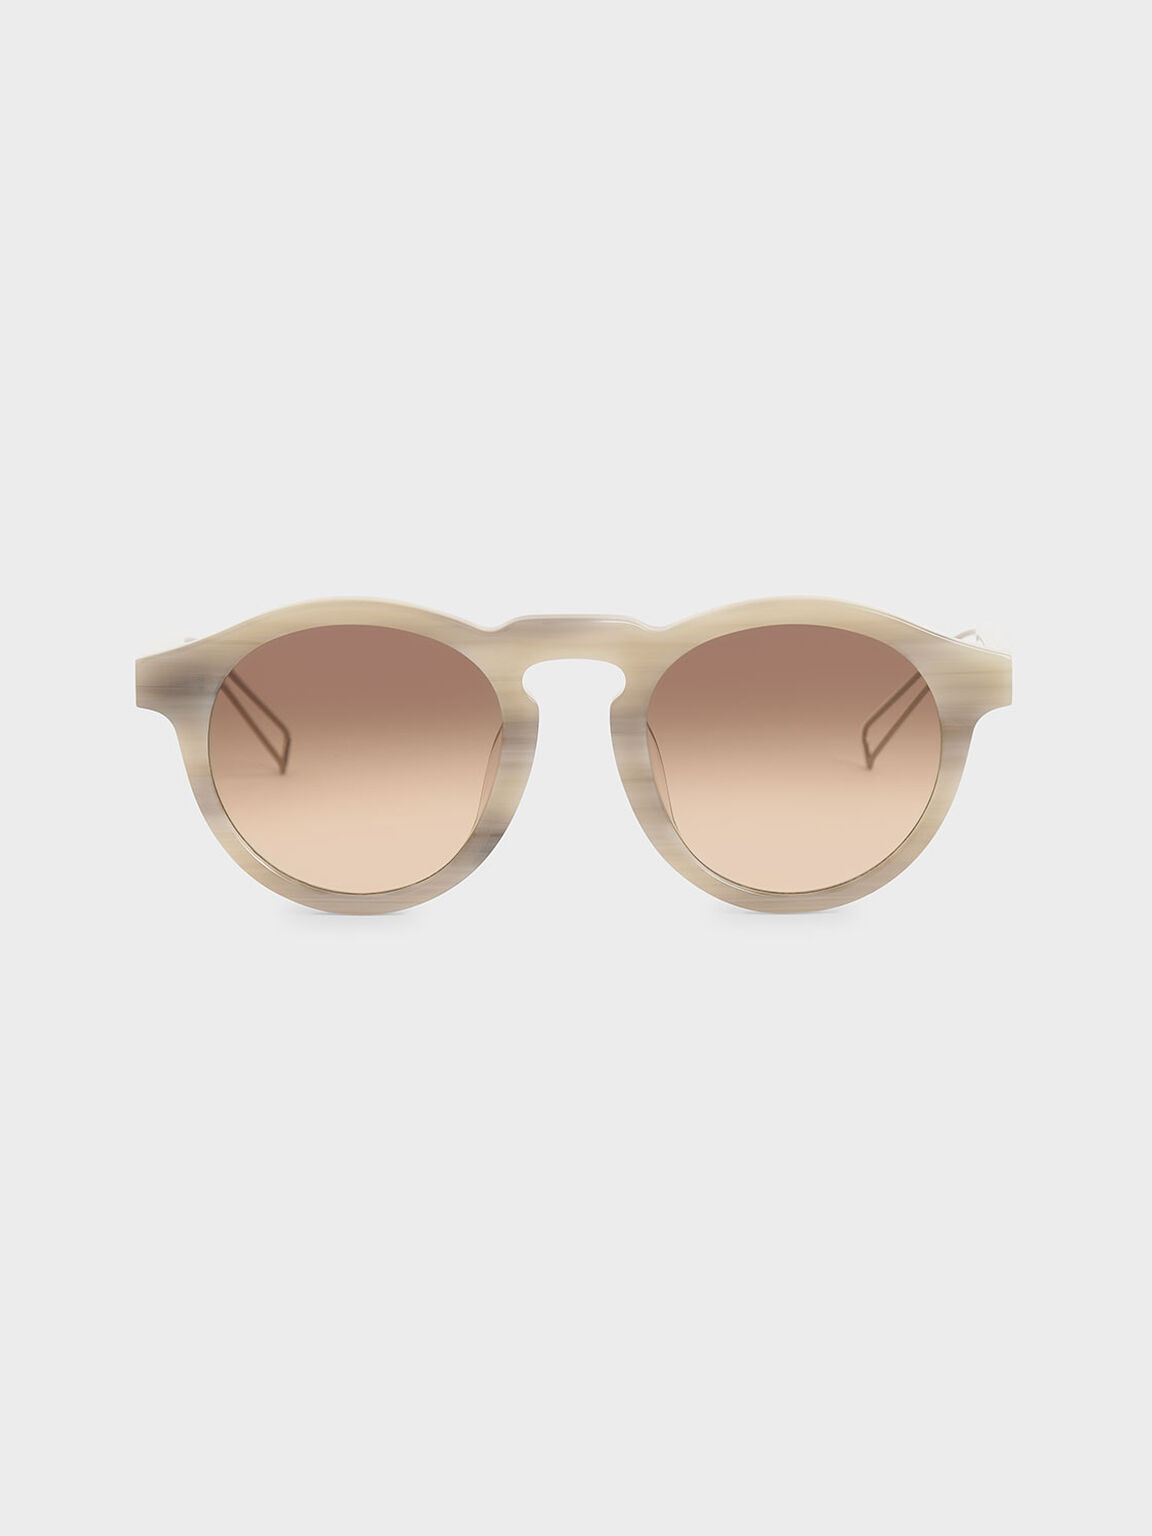 Round Acetate Sunglasses, Cream, hi-res